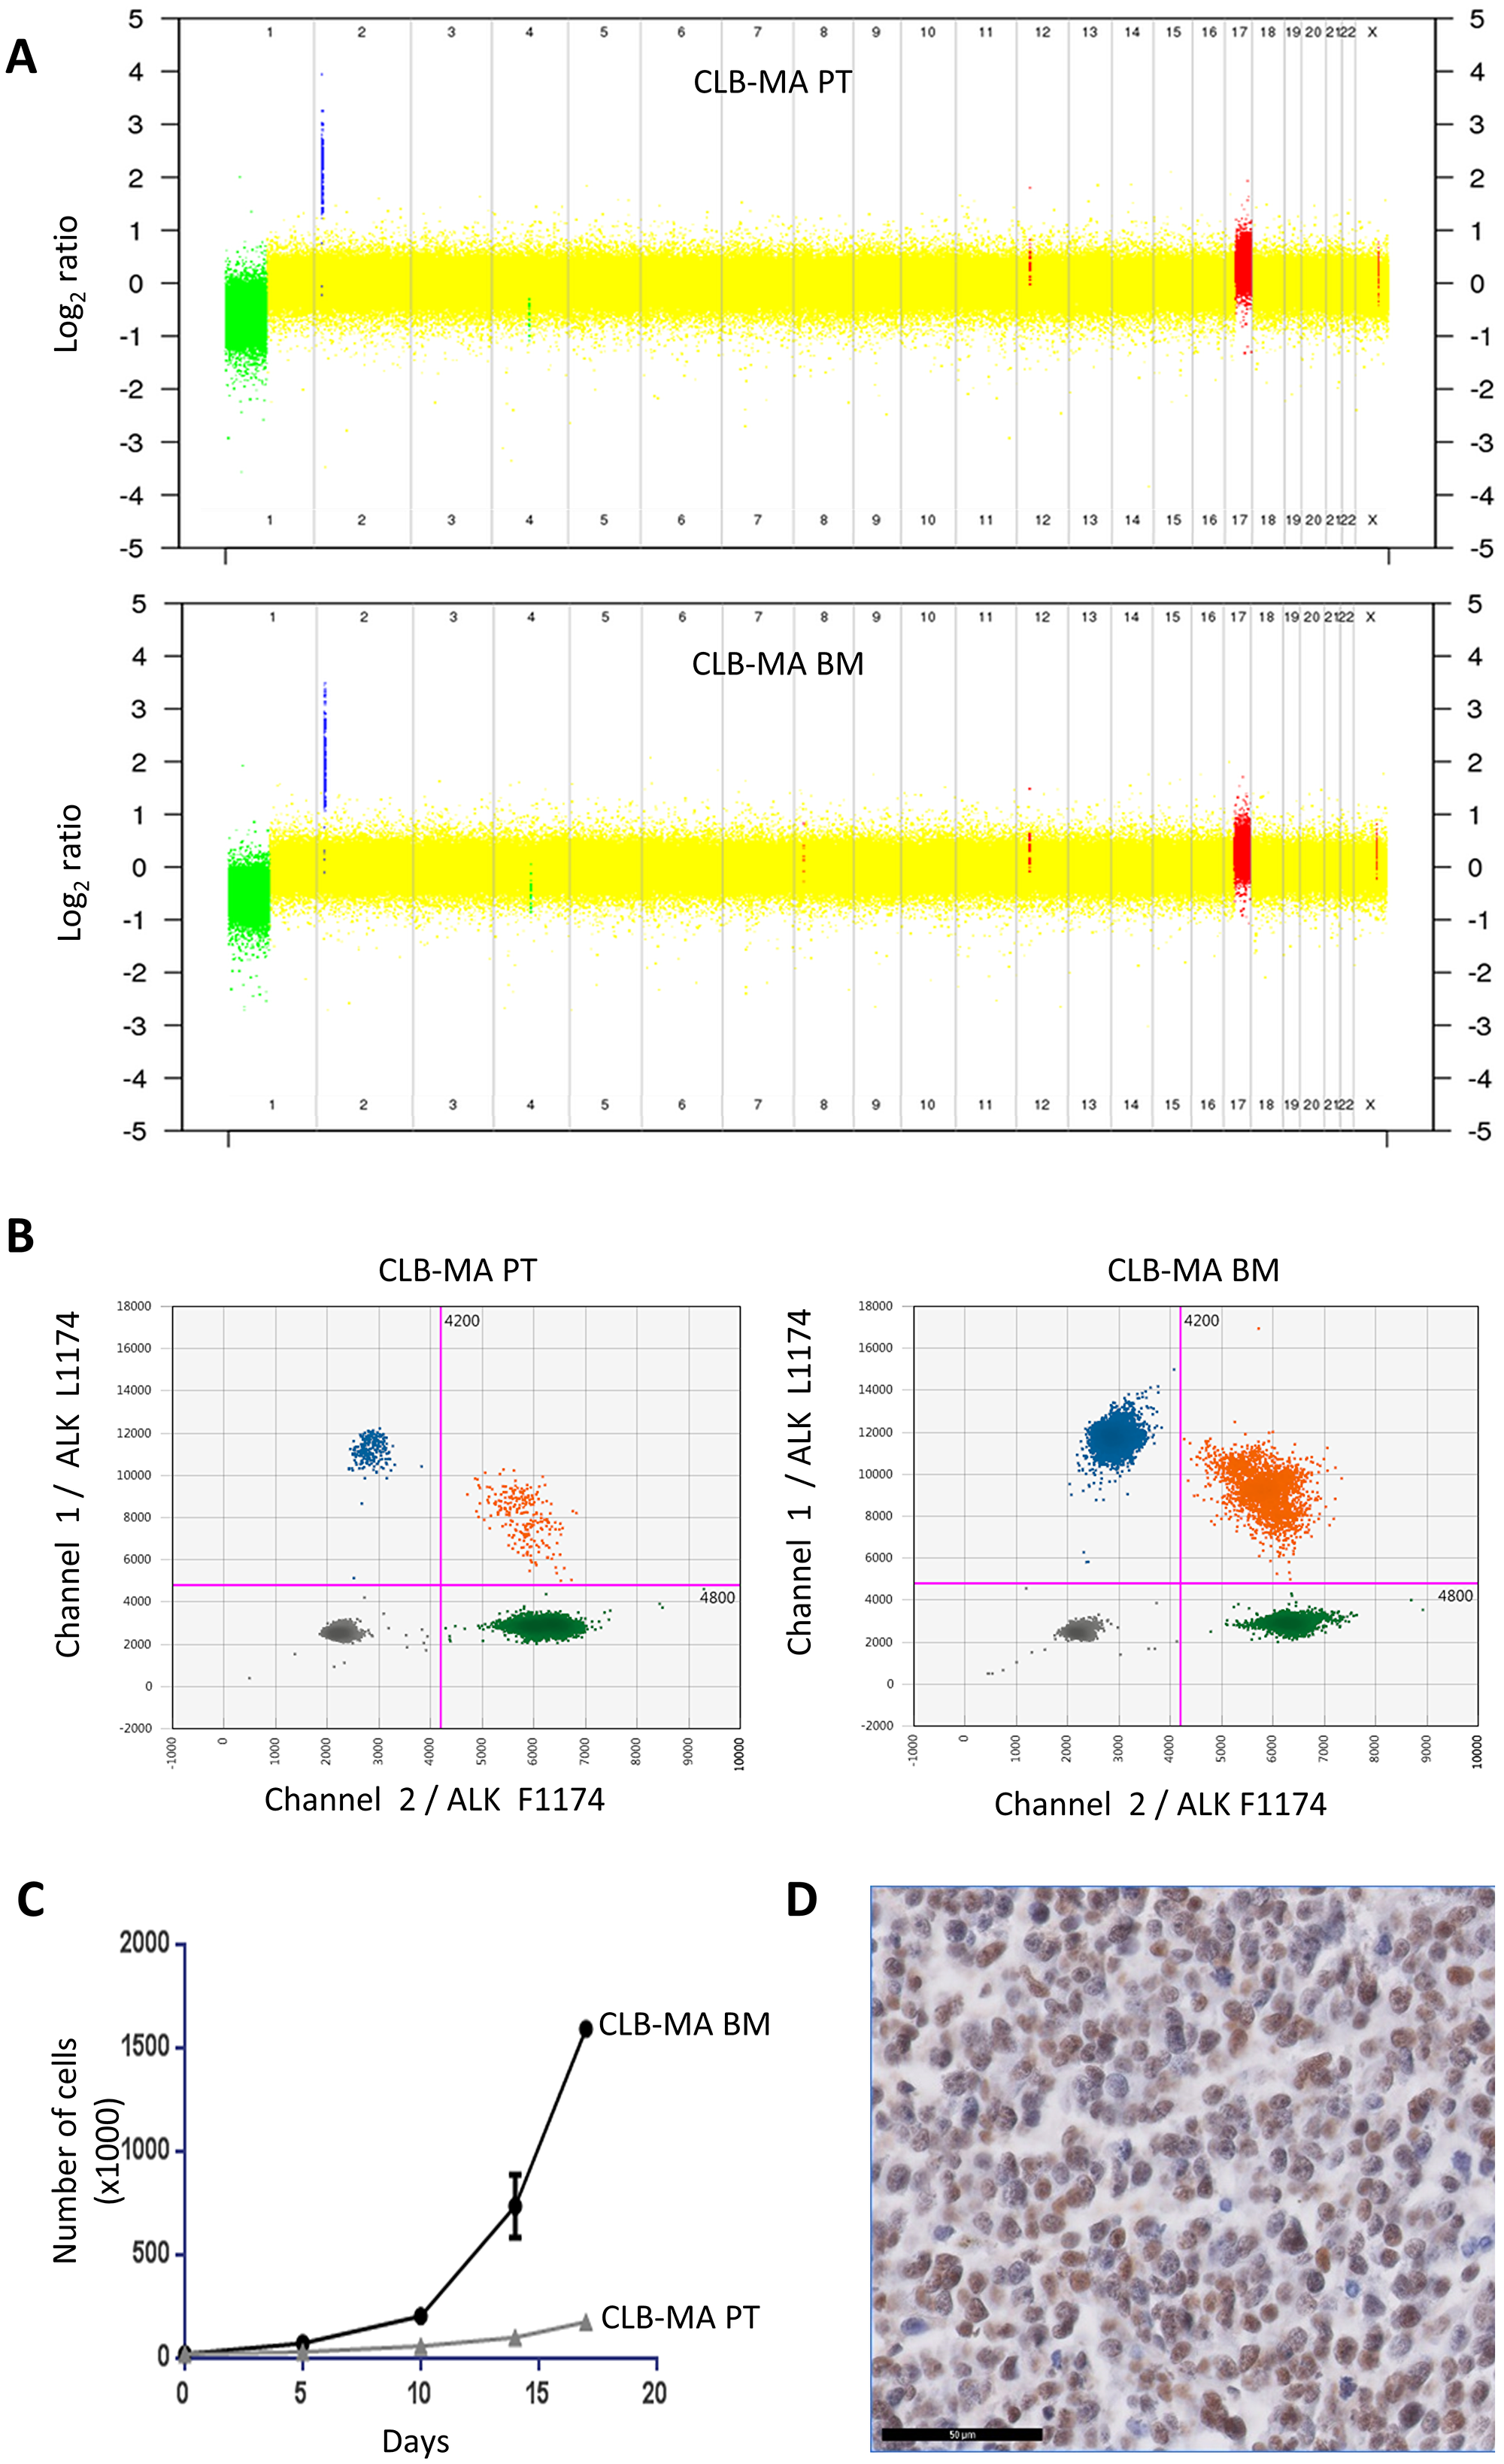 Genomic alterations and growth of the CLB-MA PT and CLB-MA BM neuroblastoma cell lines.